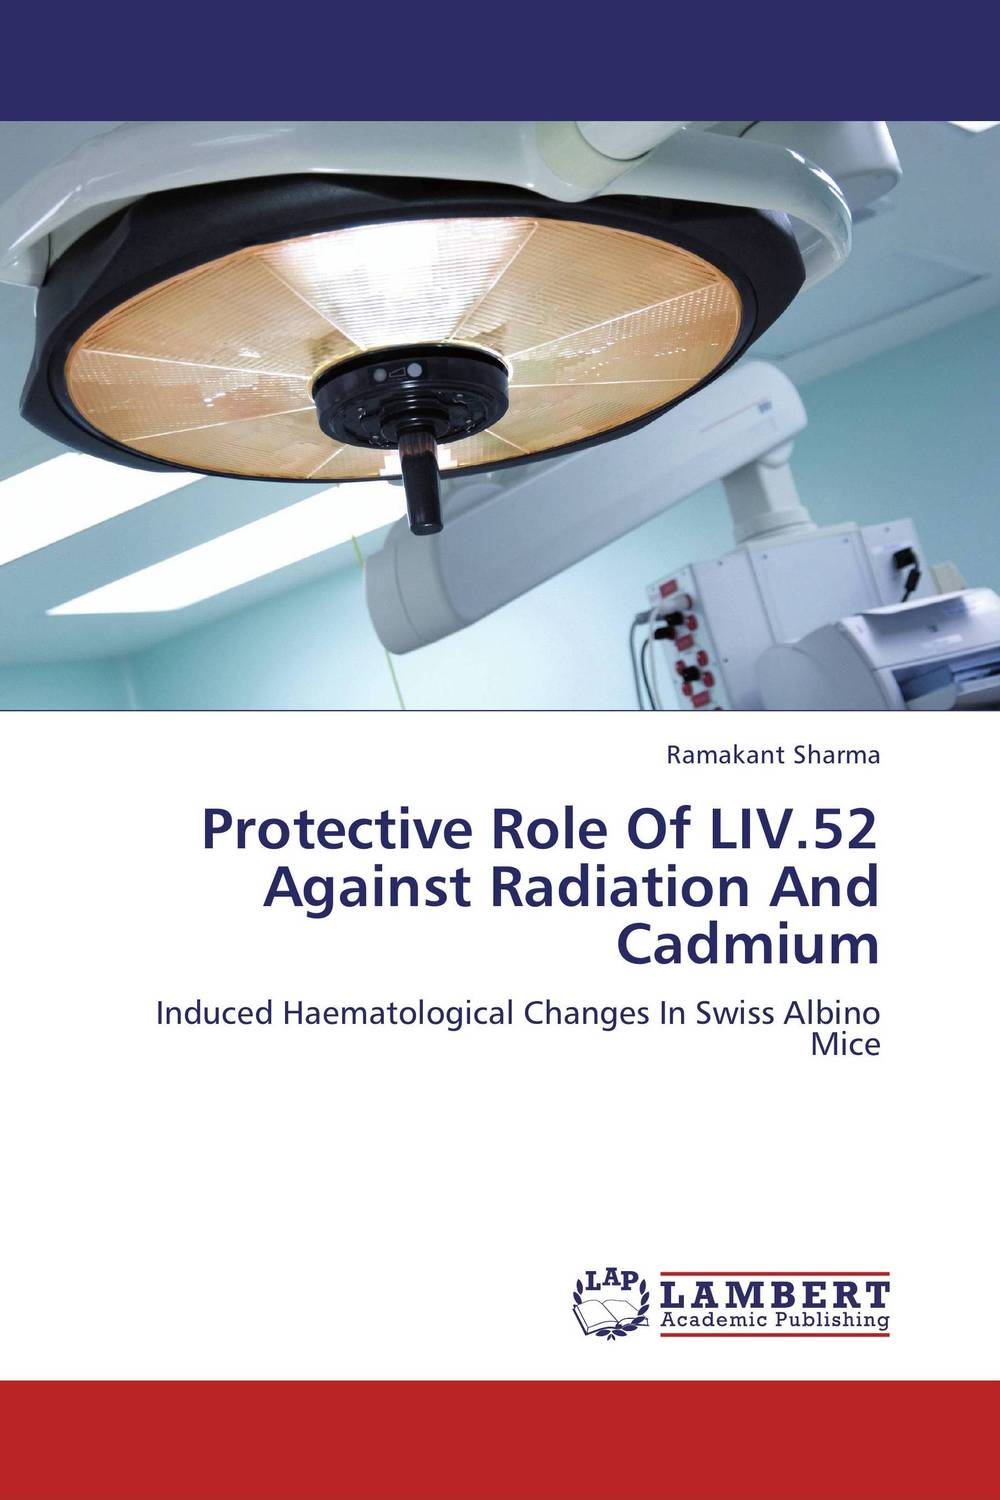 Protective Role Of LIV.52 Against Radiation And Cadmium found in brooklyn